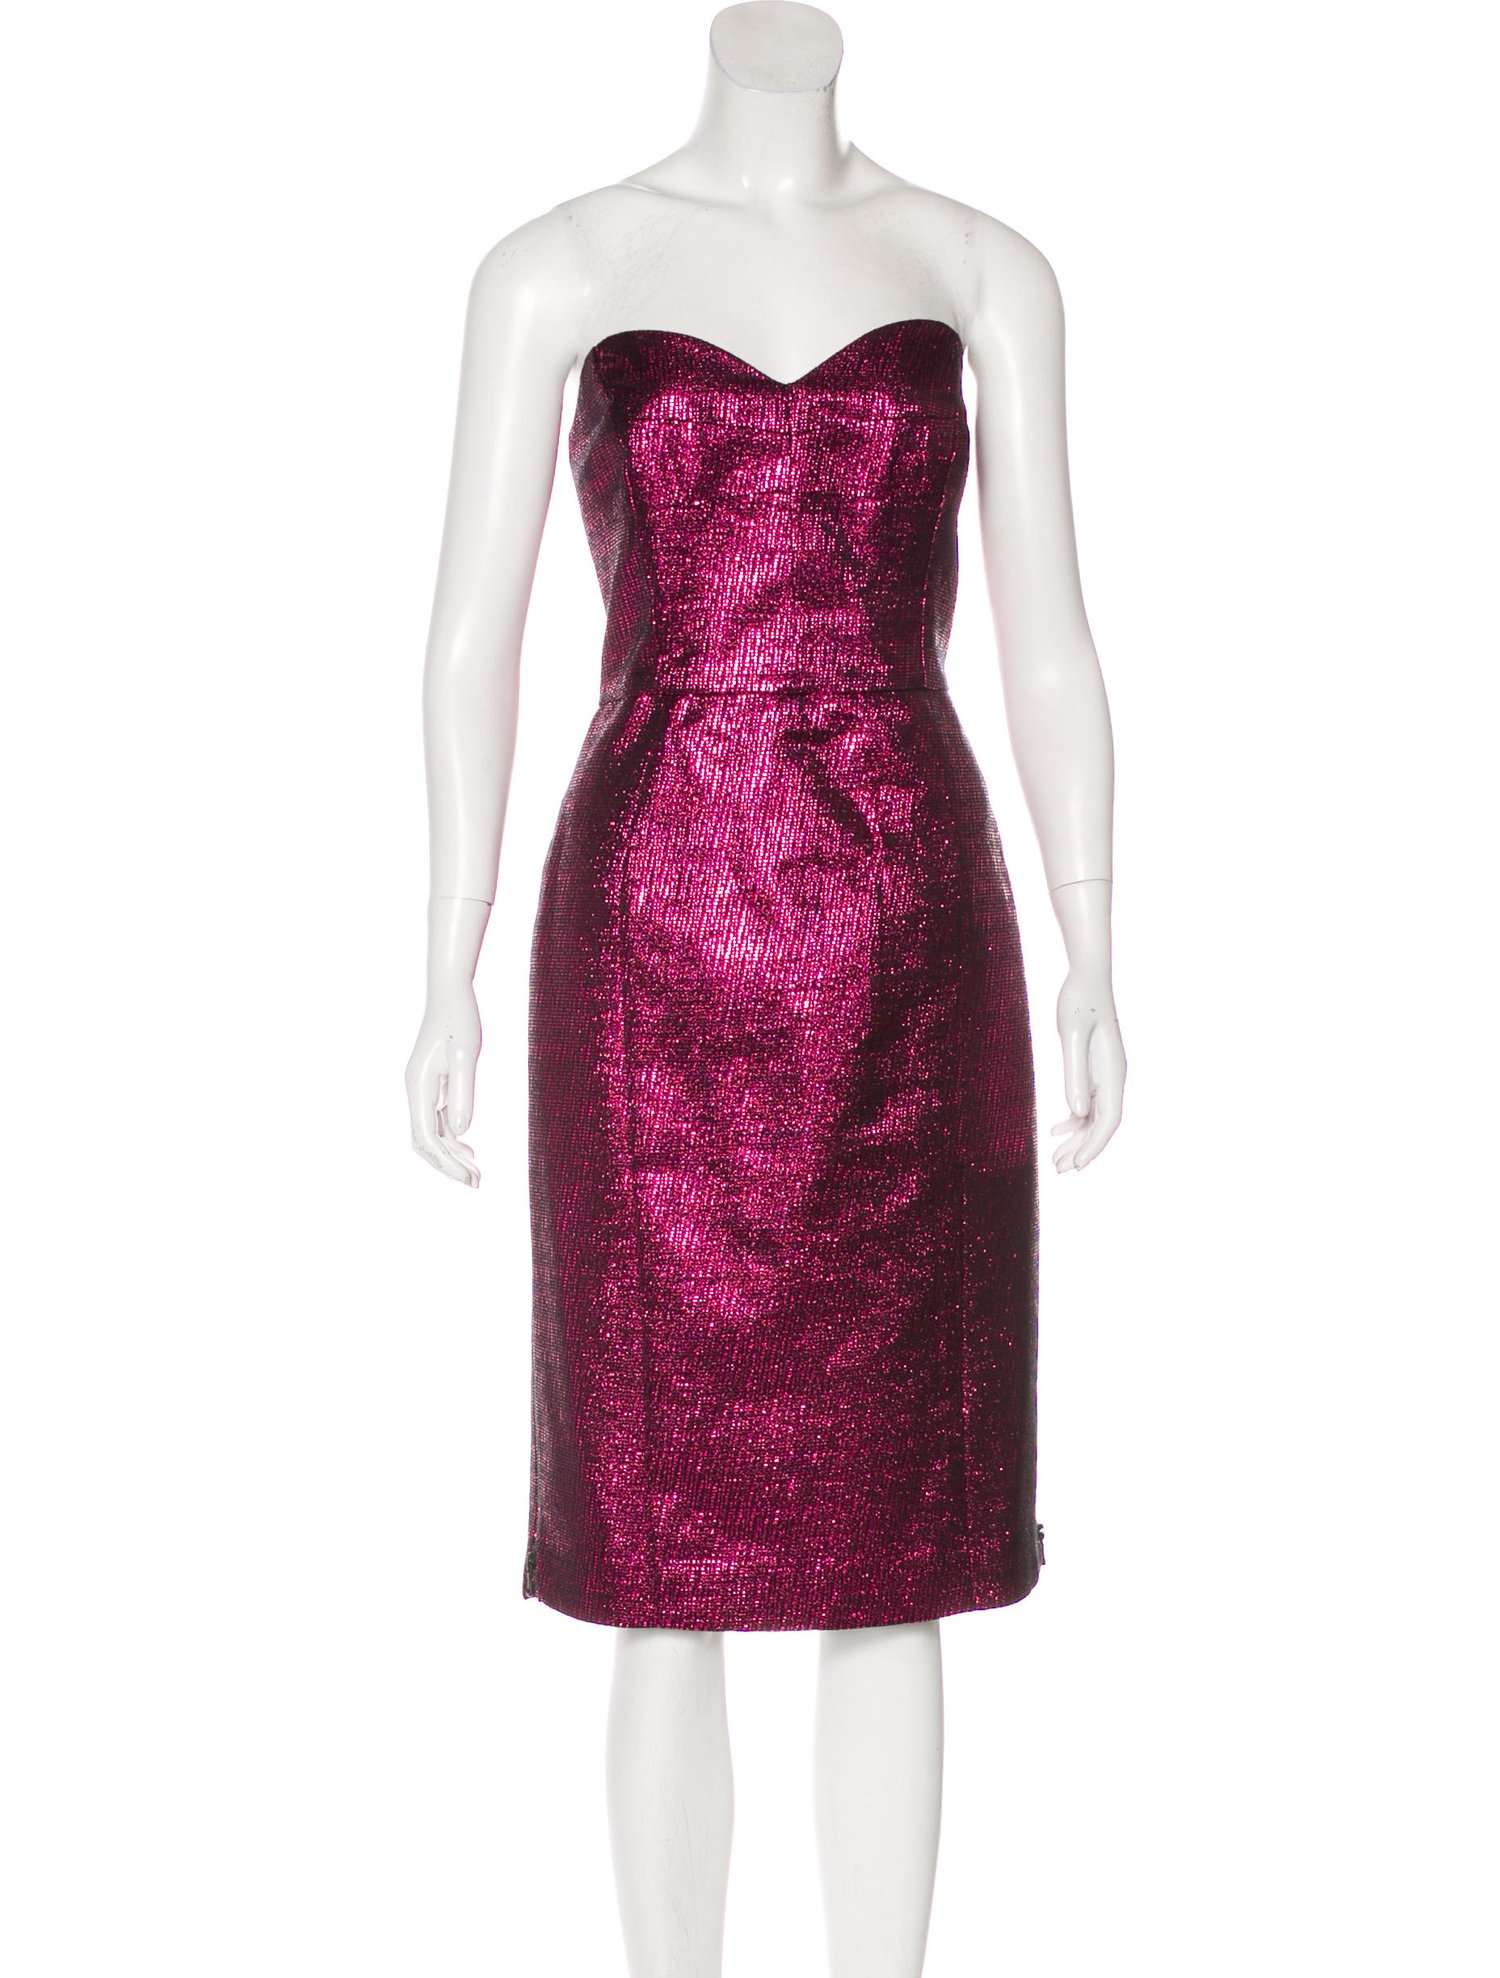 Milly Marta Strapless Dress w/ Tags $95 & 20% Off Use Code: REAL